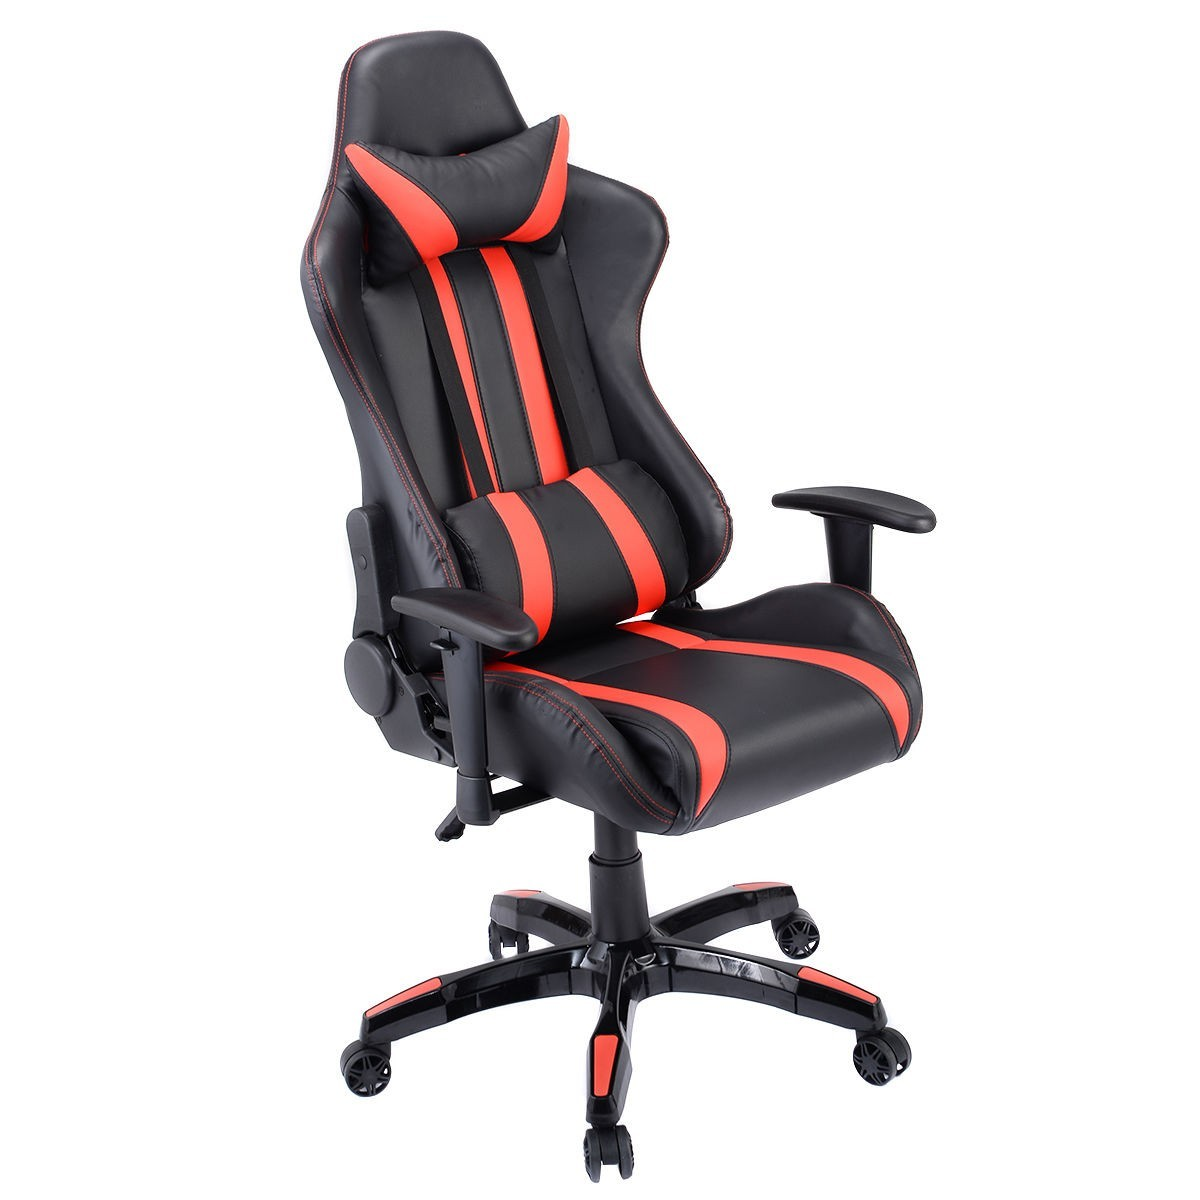 Executive High-Back Racing Style Gaming Chair - Yellow